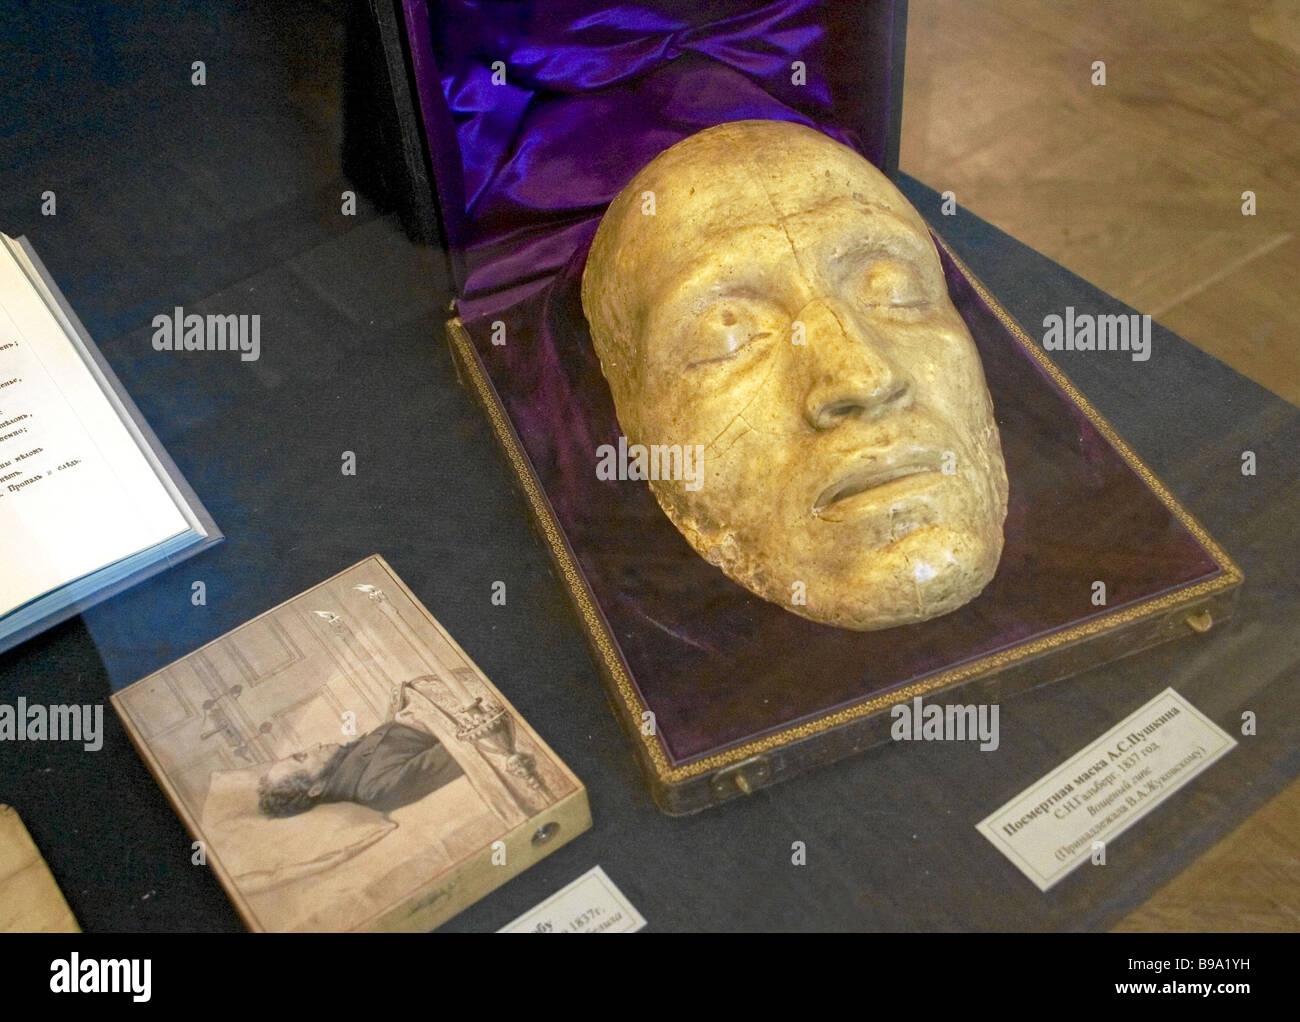 Death mask of Alexander Pushkin that was kept by poet Vasily Zhukovsky on display at exhibition The Light Went Out - Stock Image